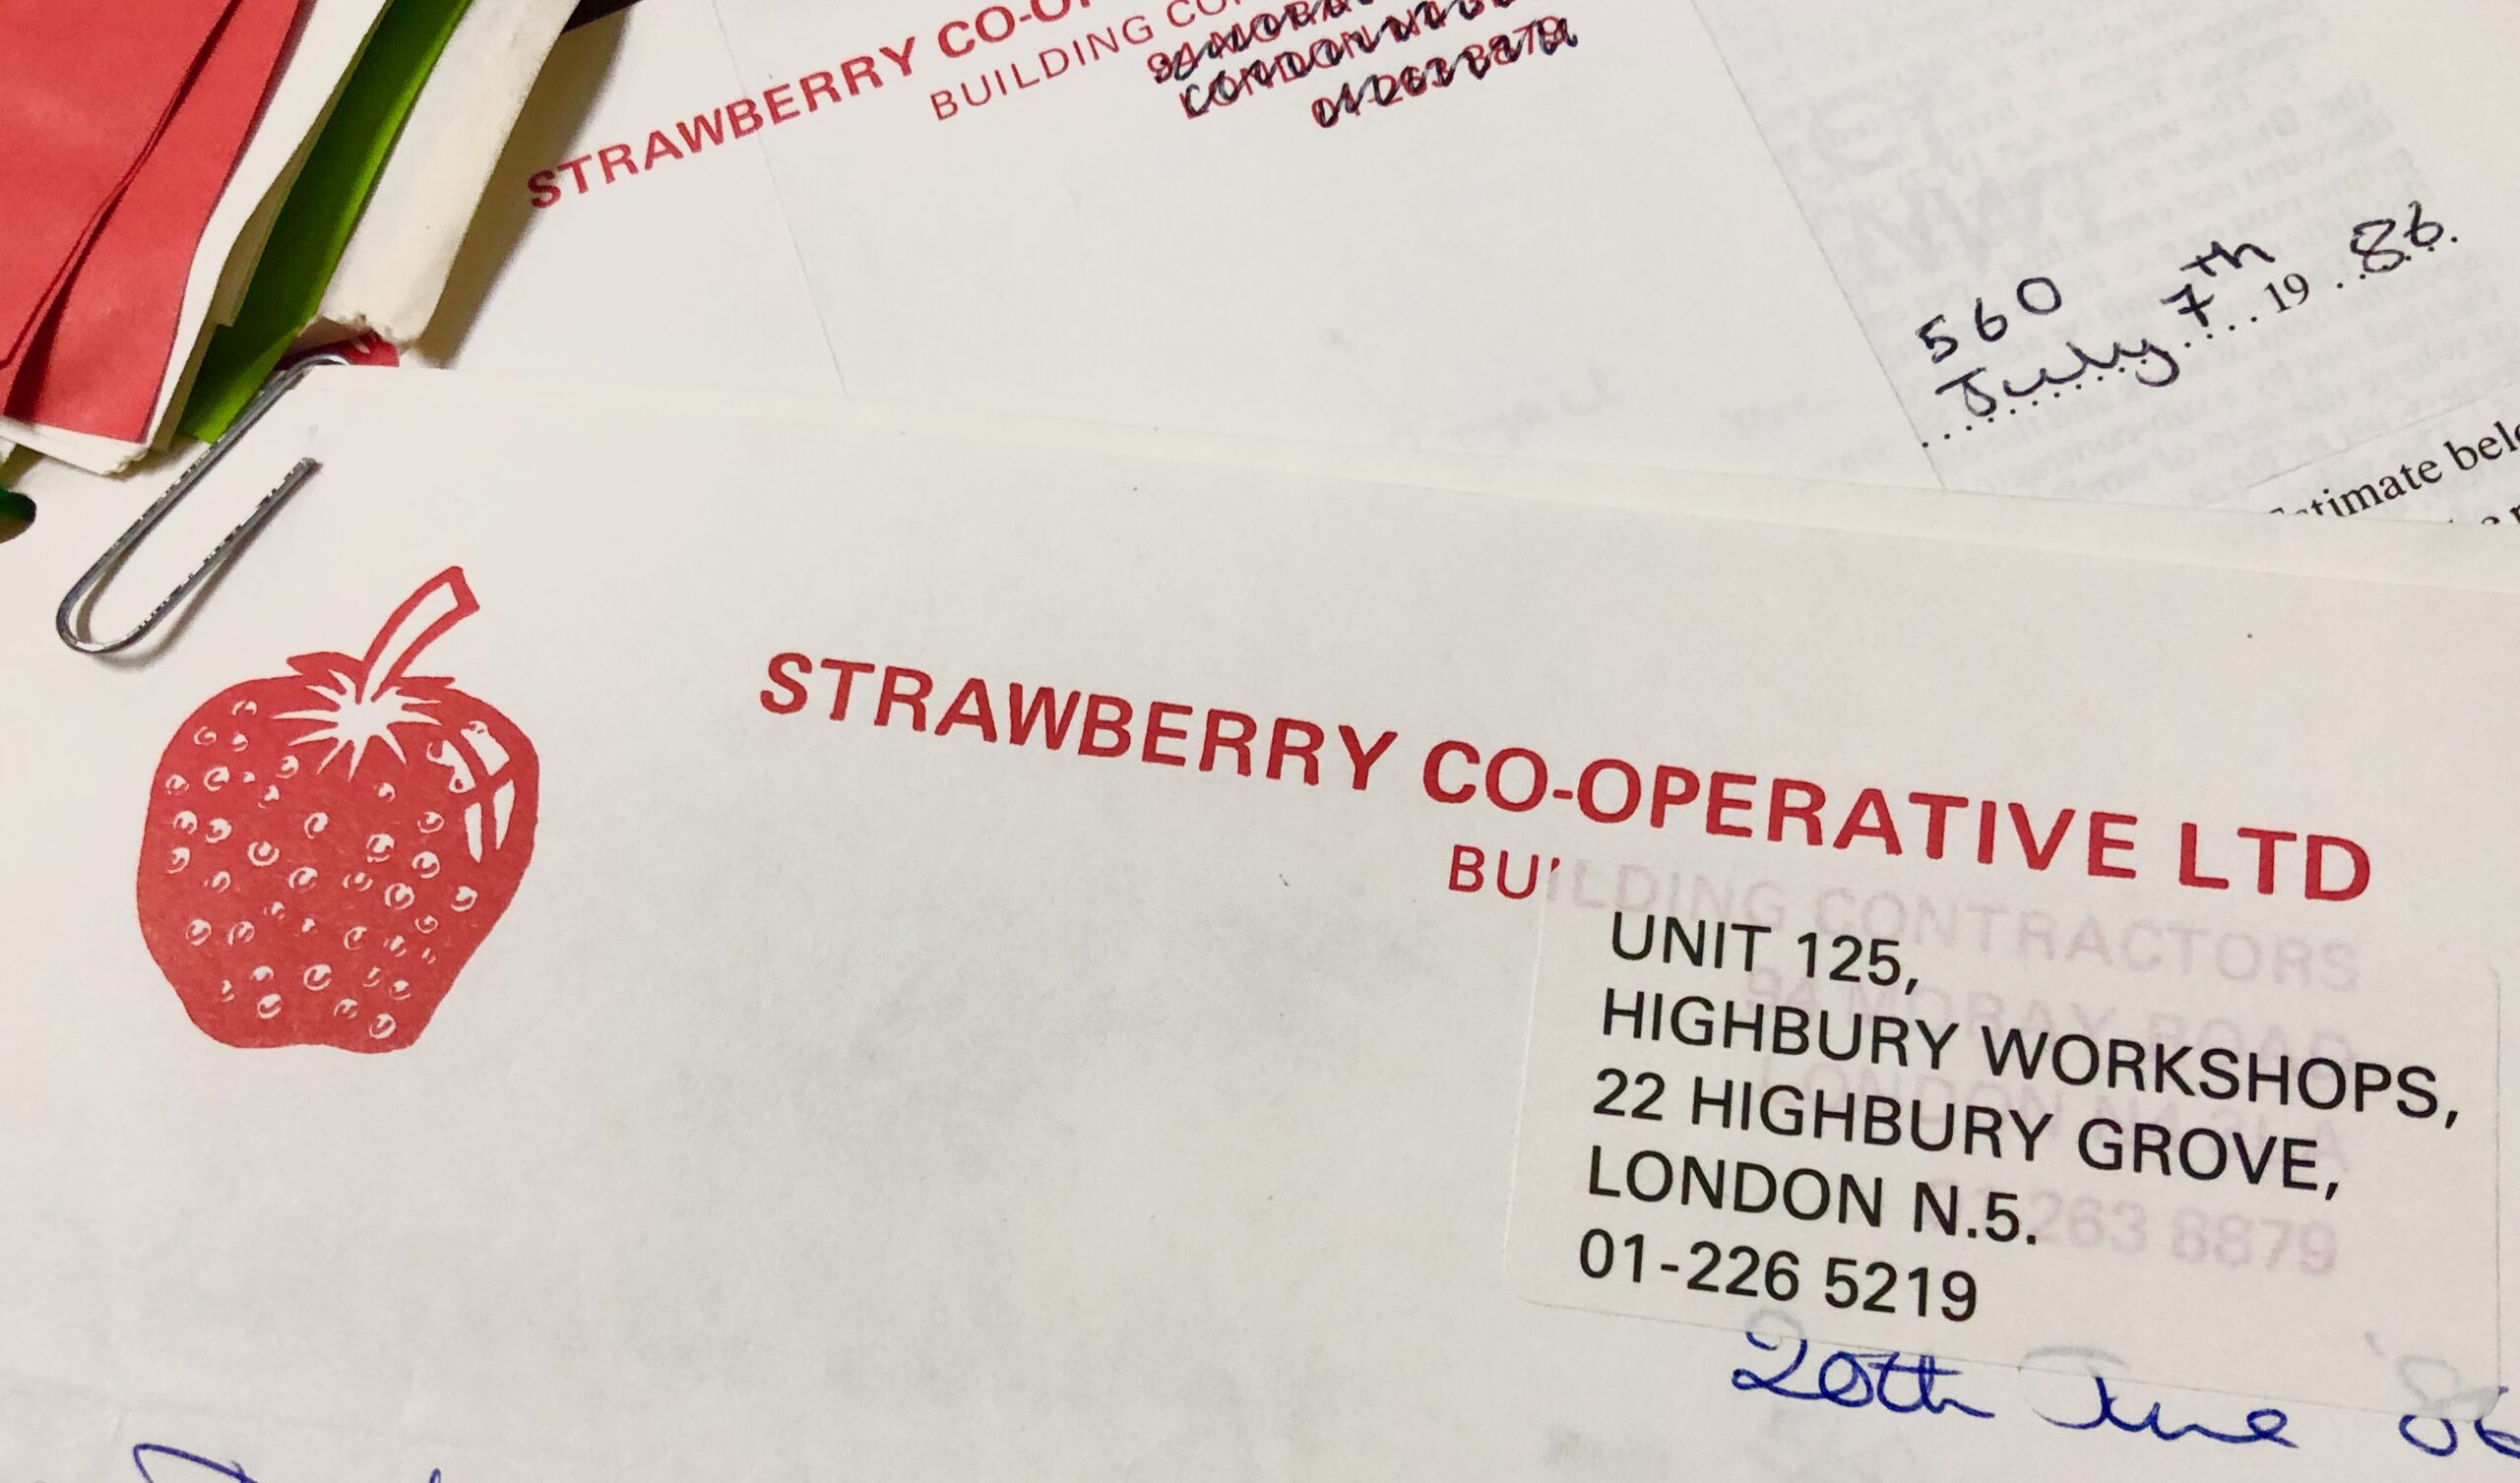 Letterhead of Strawberry Builders Co-operative, featuring their name in bright red all caps block type and to the left of that, a red illustration of a strawberry.